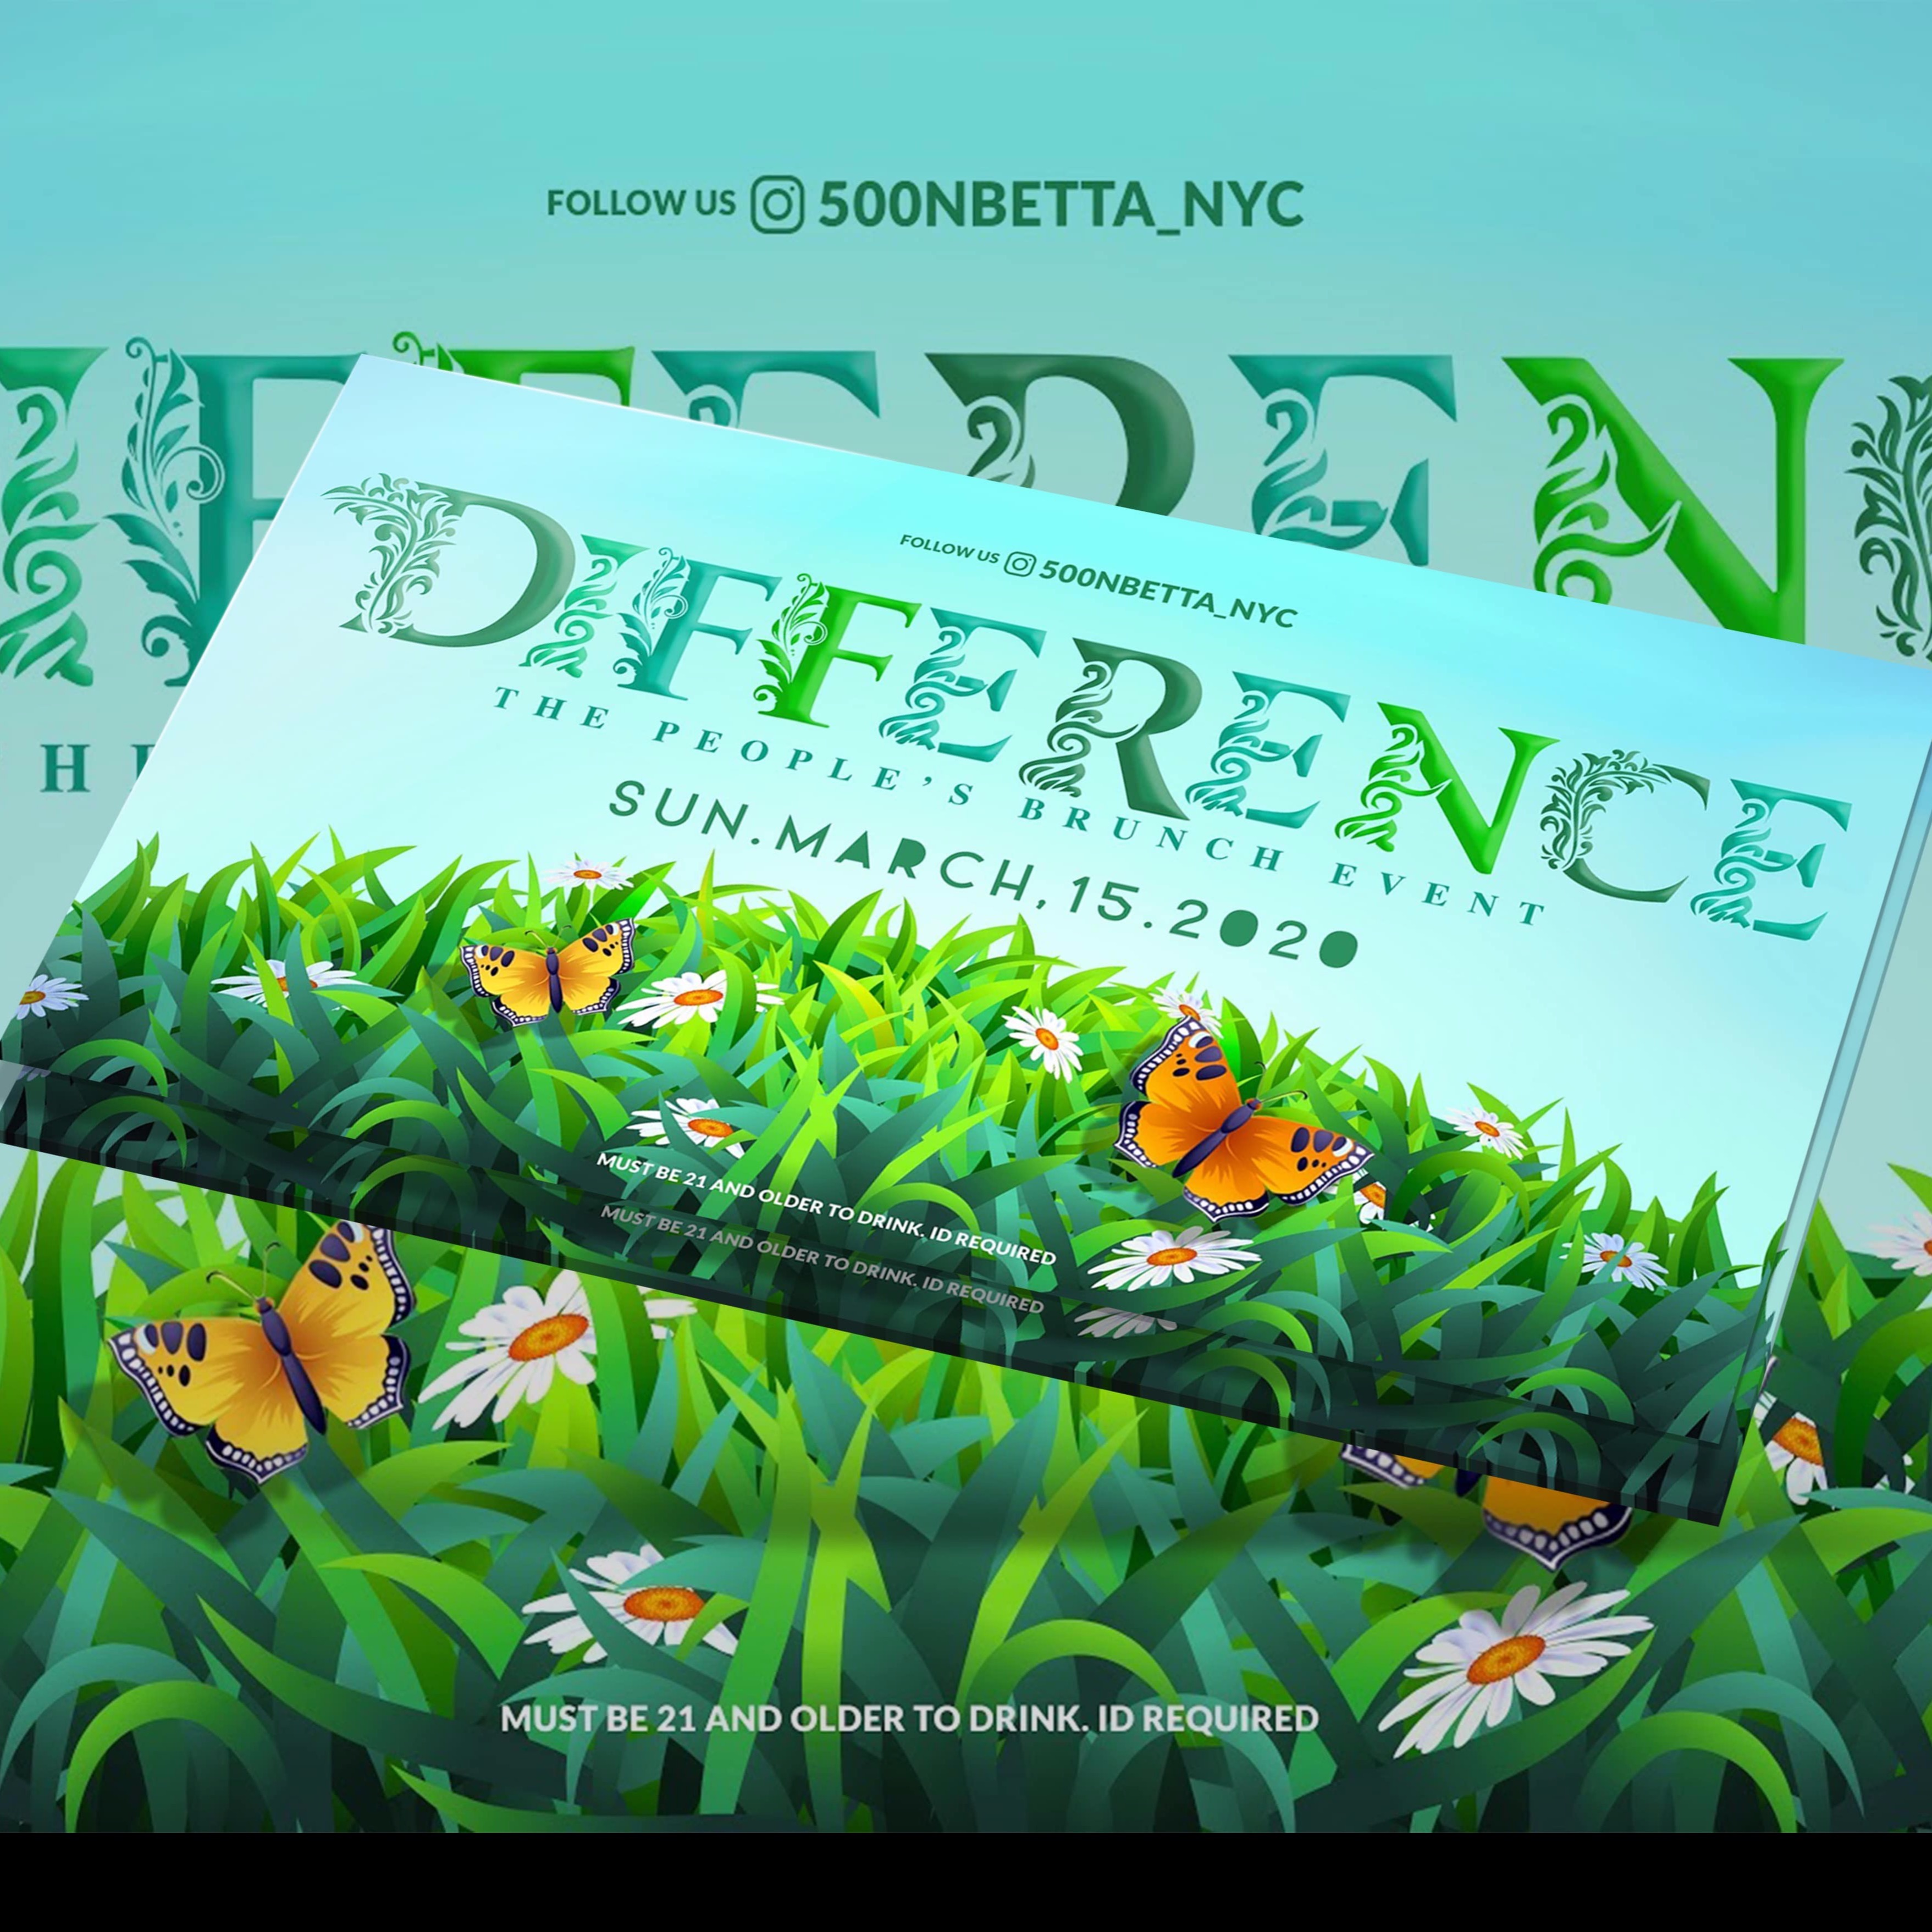 Postpone Till NYC lifts Ban on Large gathering  DUE TO COVID !!!!! - THE PEOPLE'S BRUNCH EVENT -